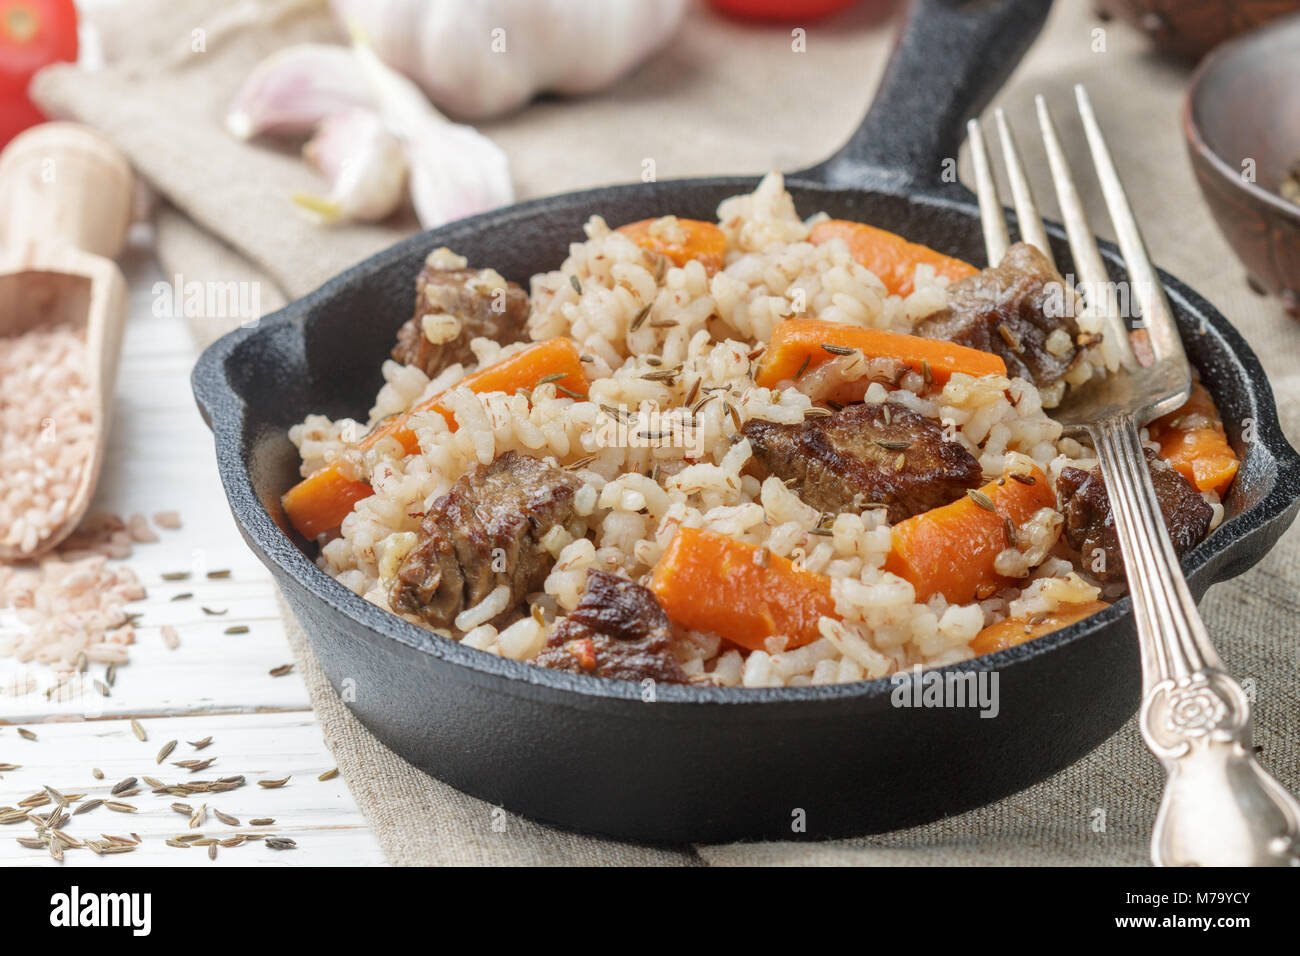 Devzira pilaf with lamb, onions, carrots and spices (cumin, coriander, pepper). Traditional dishes of Uzbek cuisine. - Stock Image